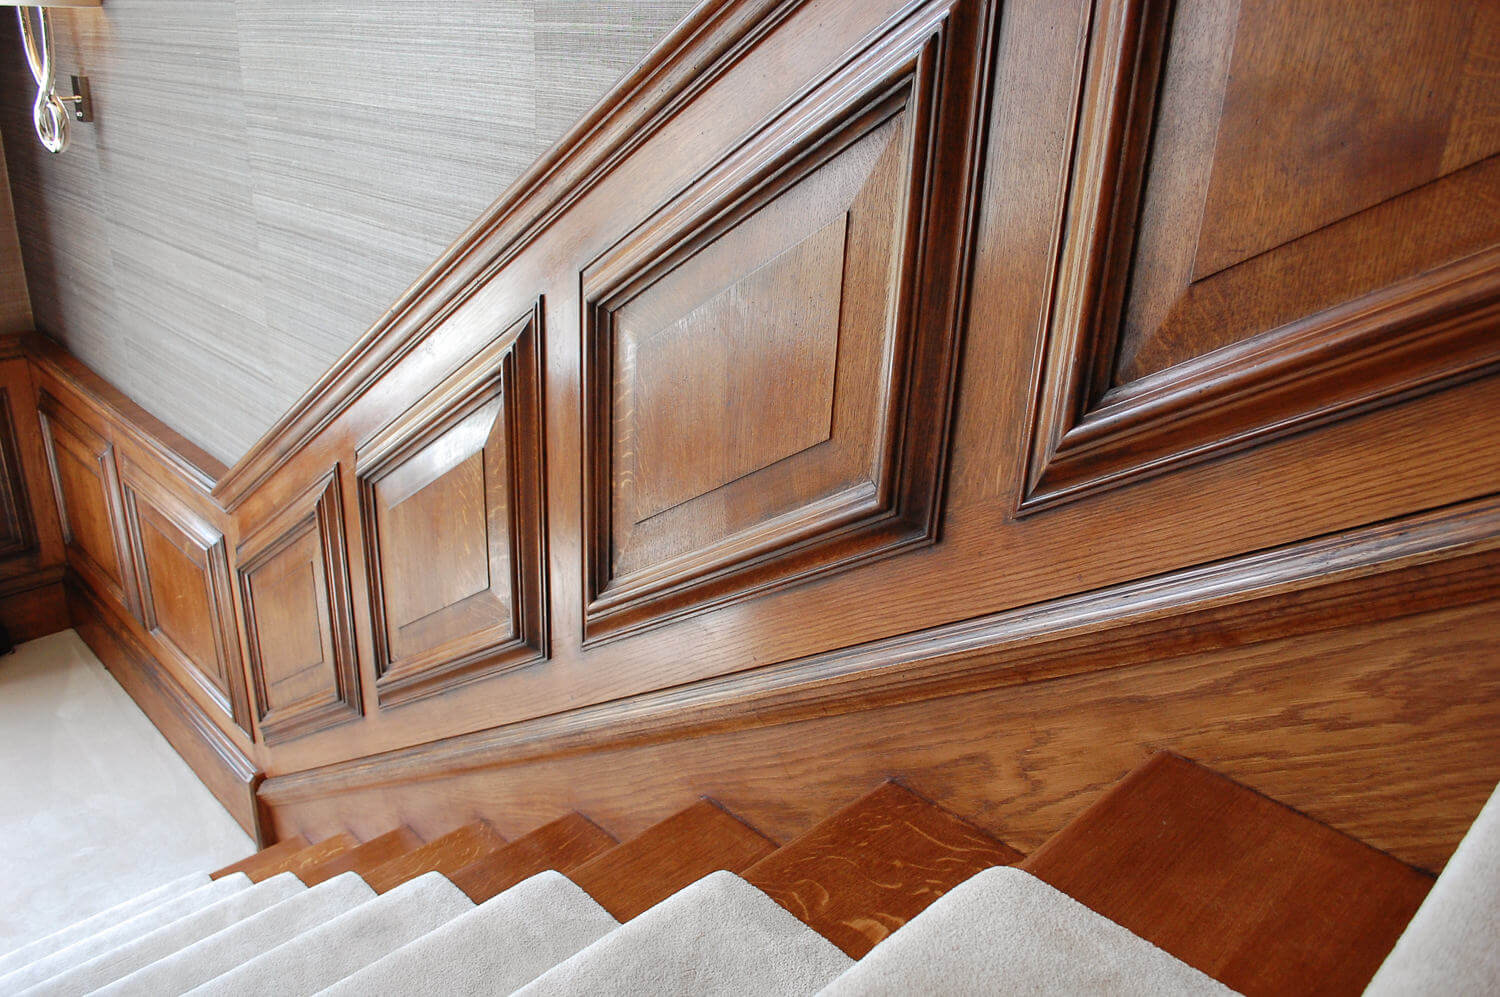 18th century style Georgian interiors and made to order bespoke staircase oak panelling